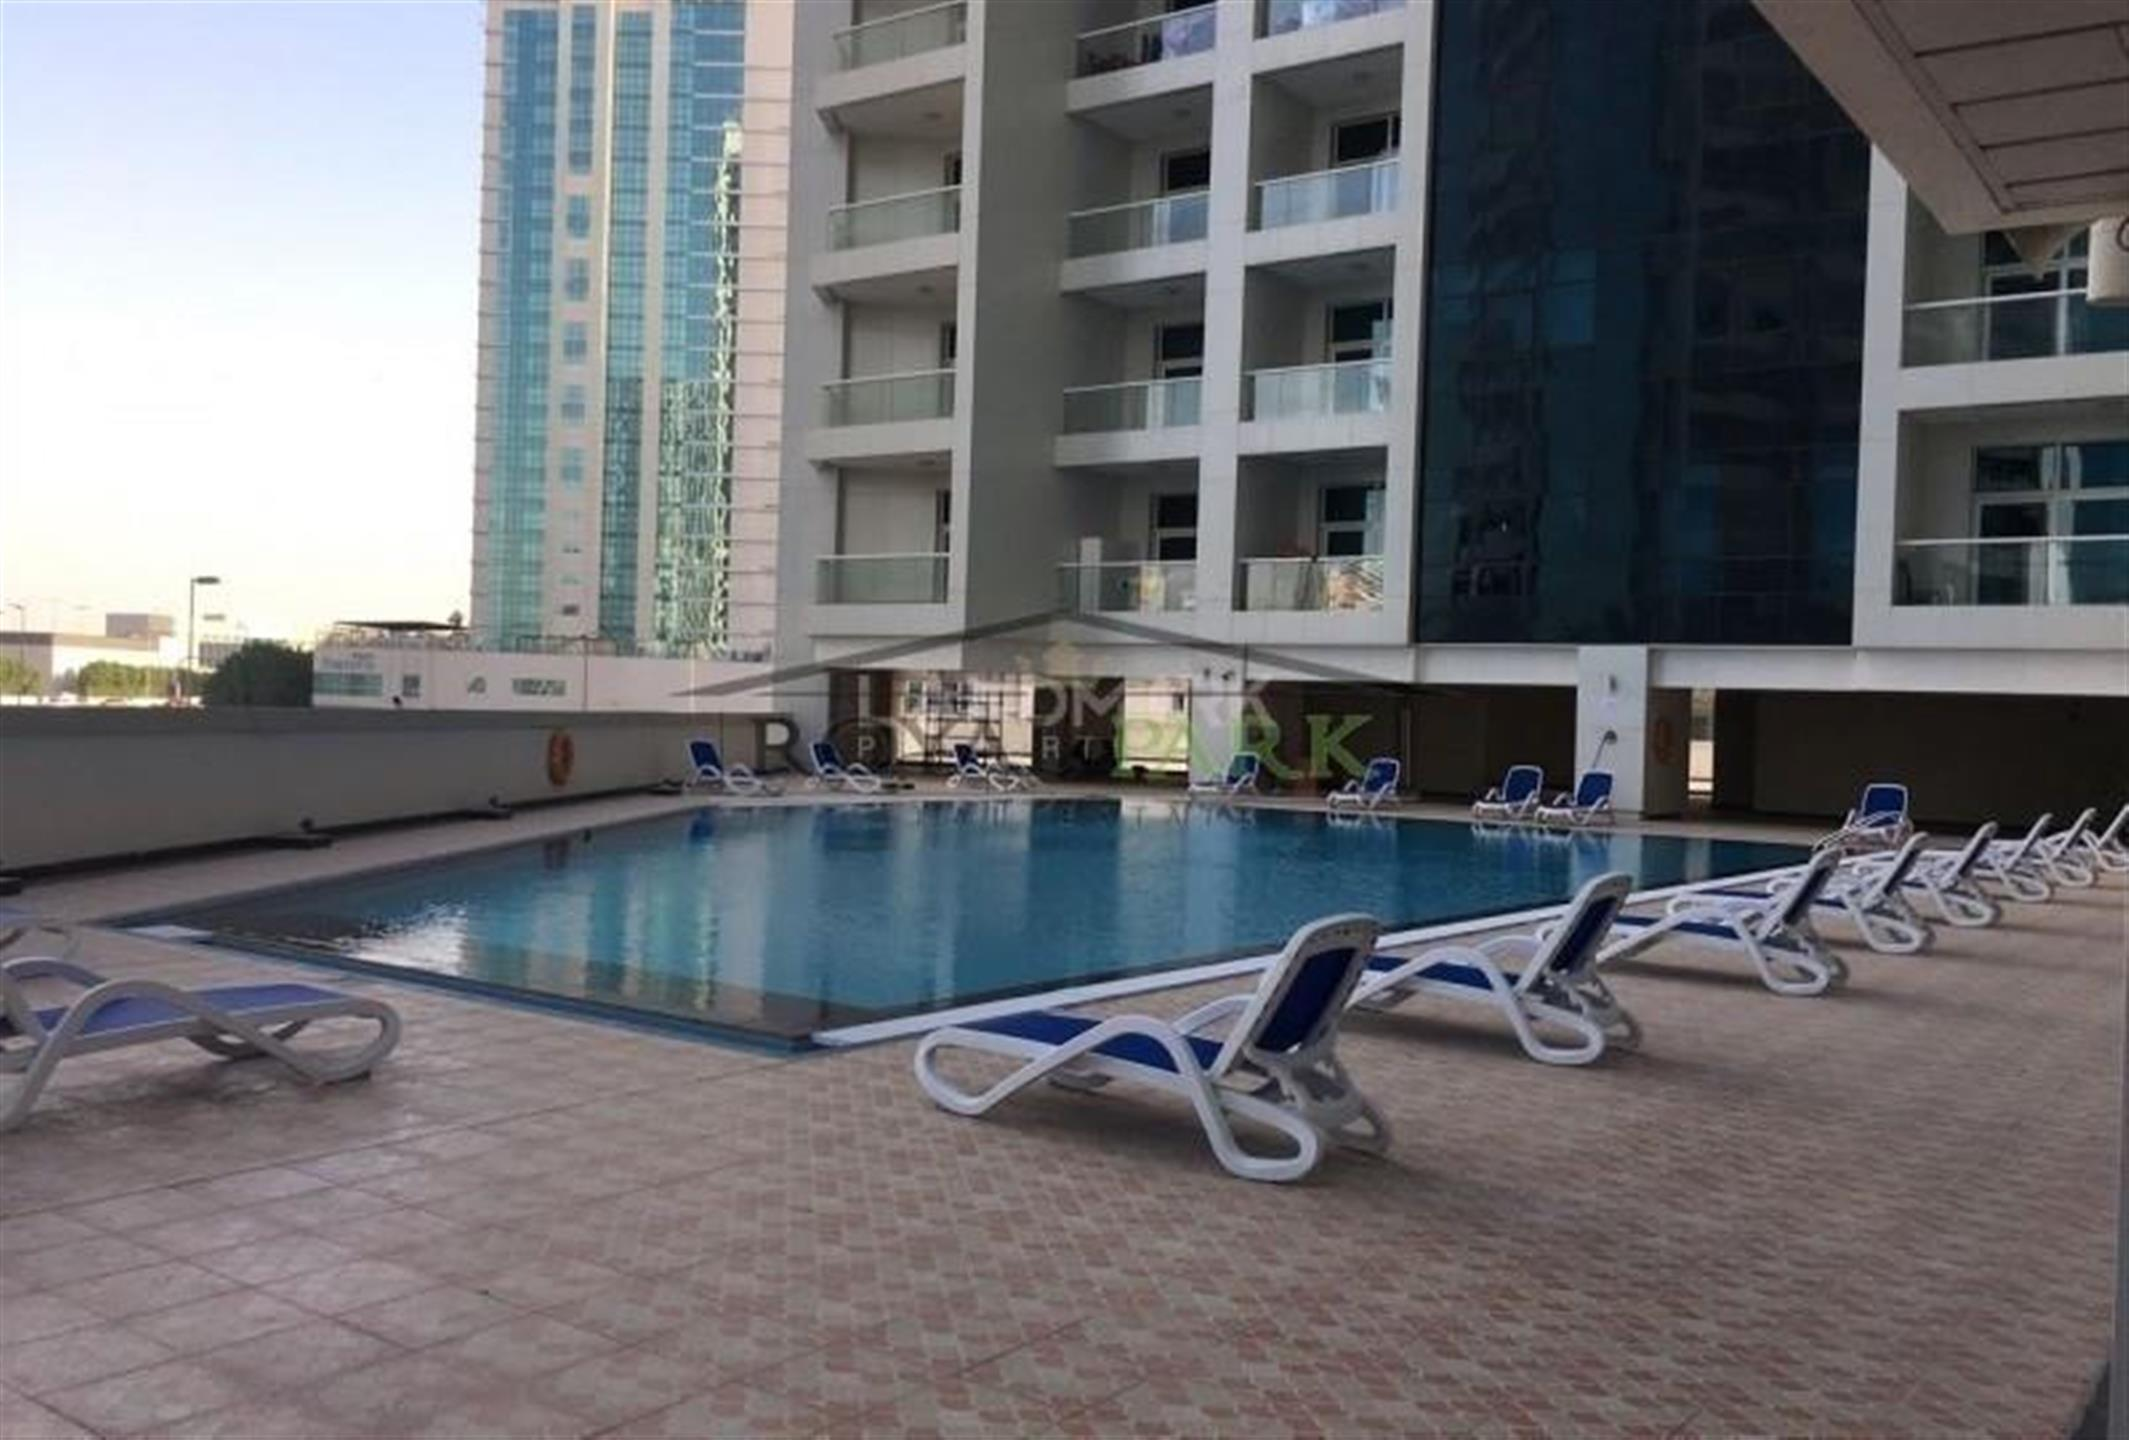 1 Bedroom With Spacious Balcony In Tecom, Dubai, Uae